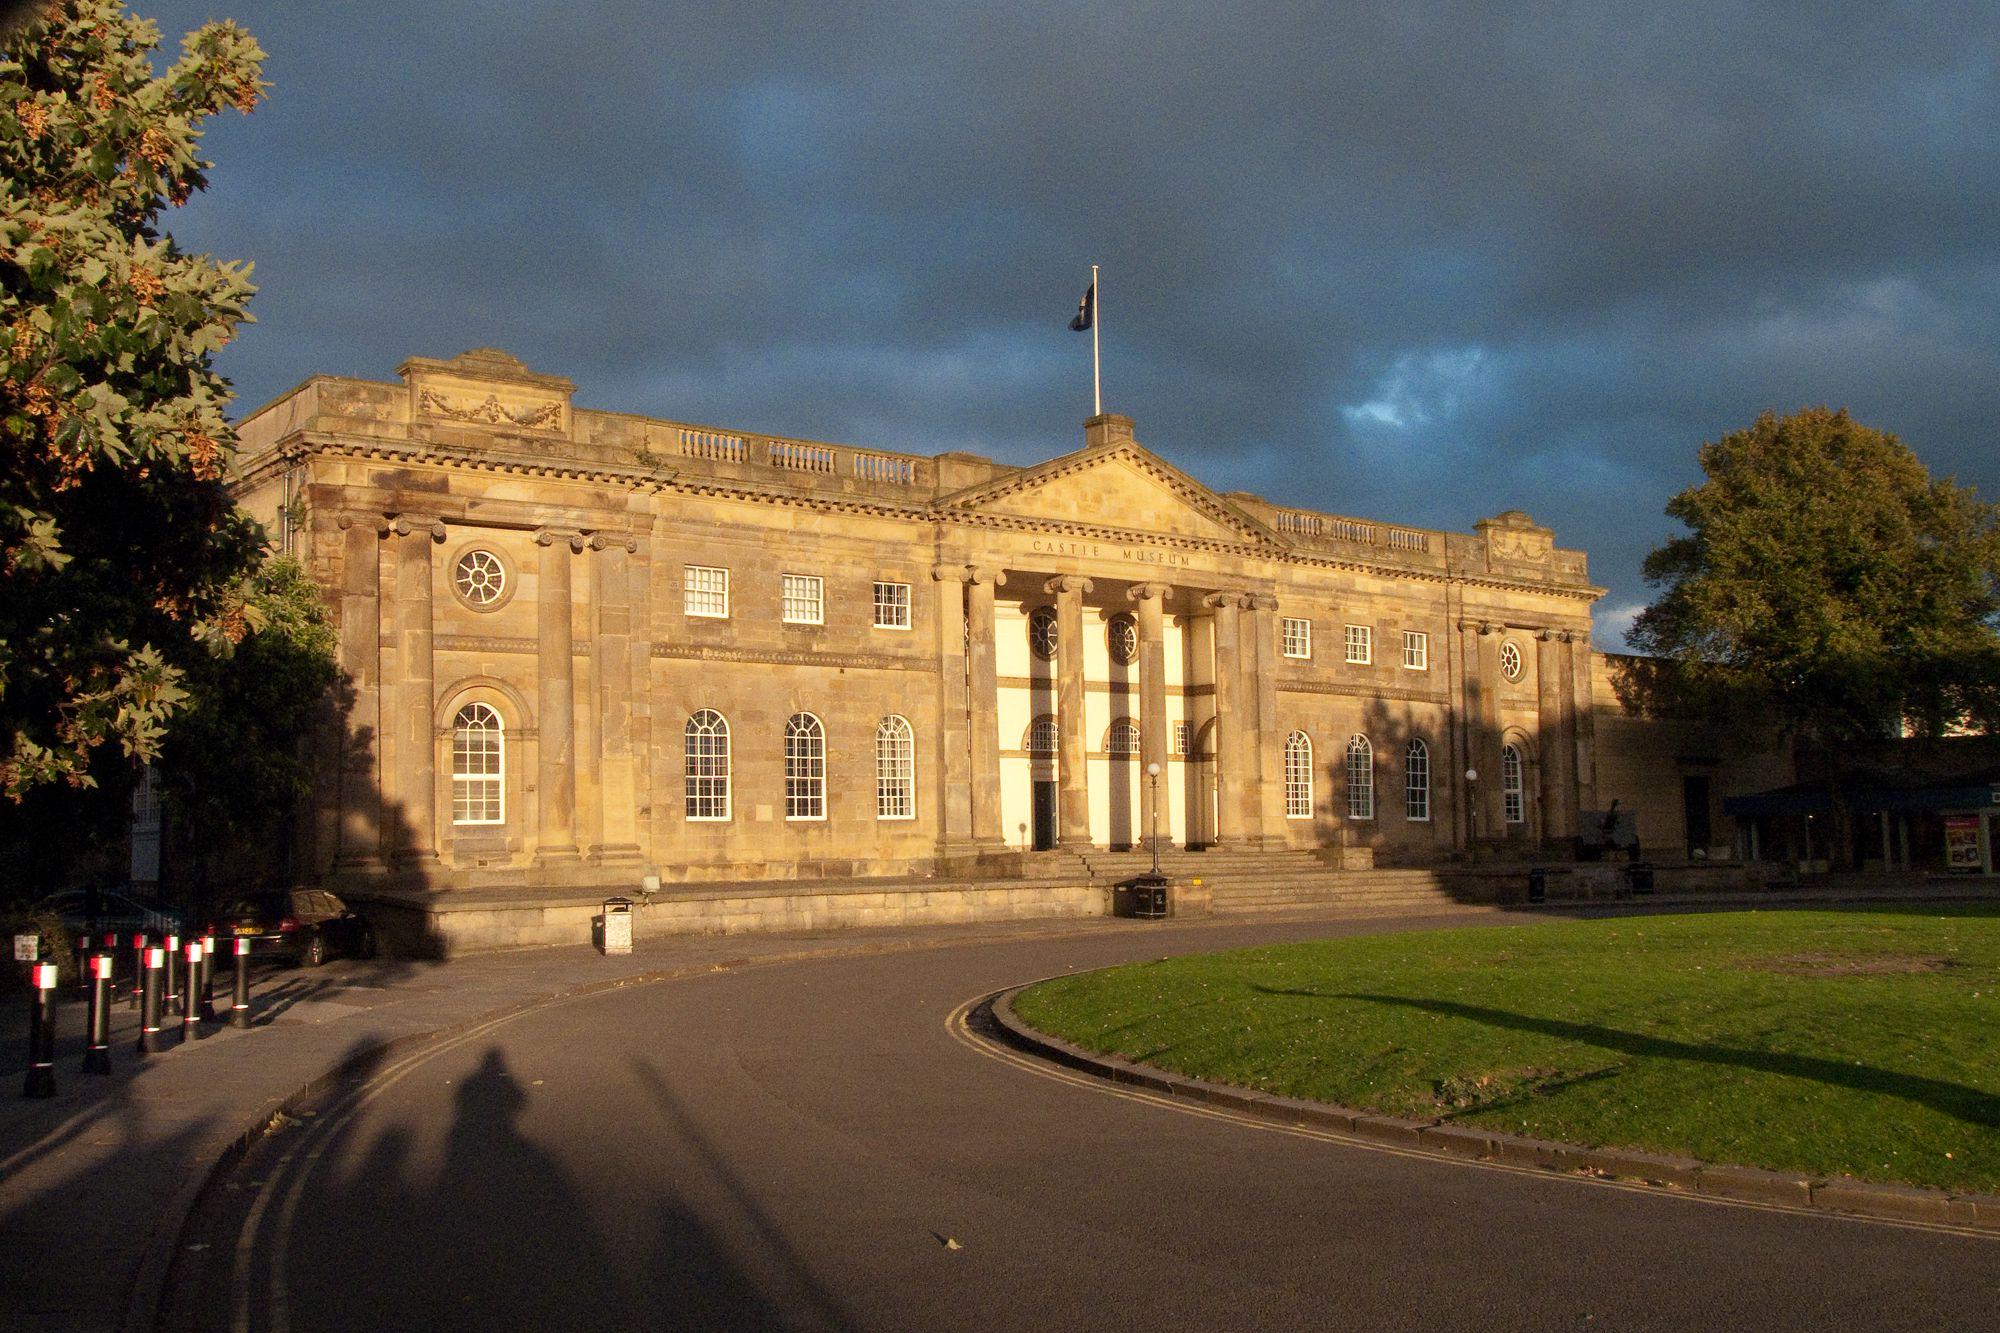 Hotels, B&Bs & Self-Catering in York